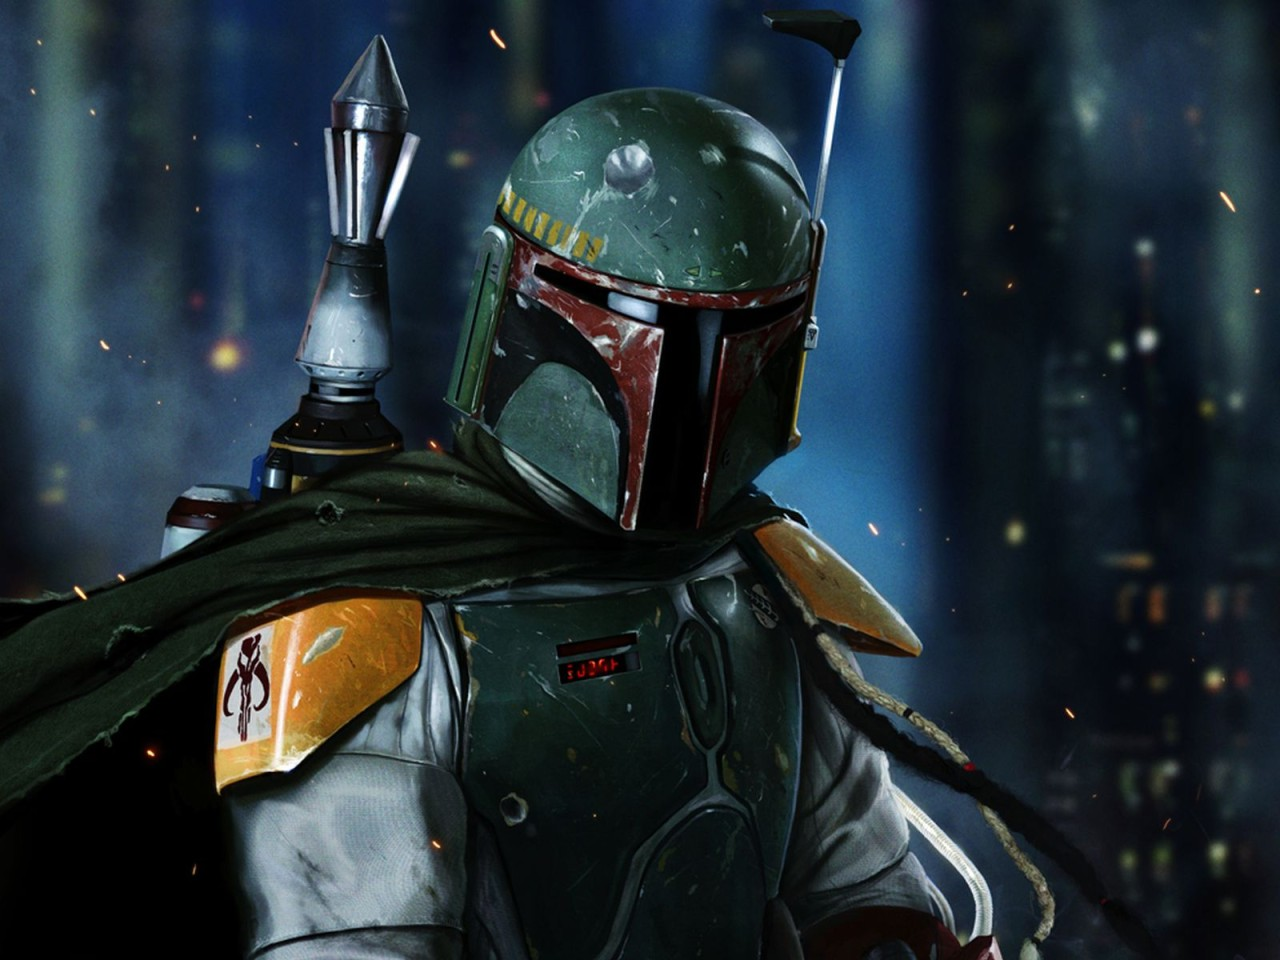 Lucasfilm President Kathleen Kennedy has officially confirmed that the standalone Boba Fett movie project has been scrapped by the blockbuster studio.